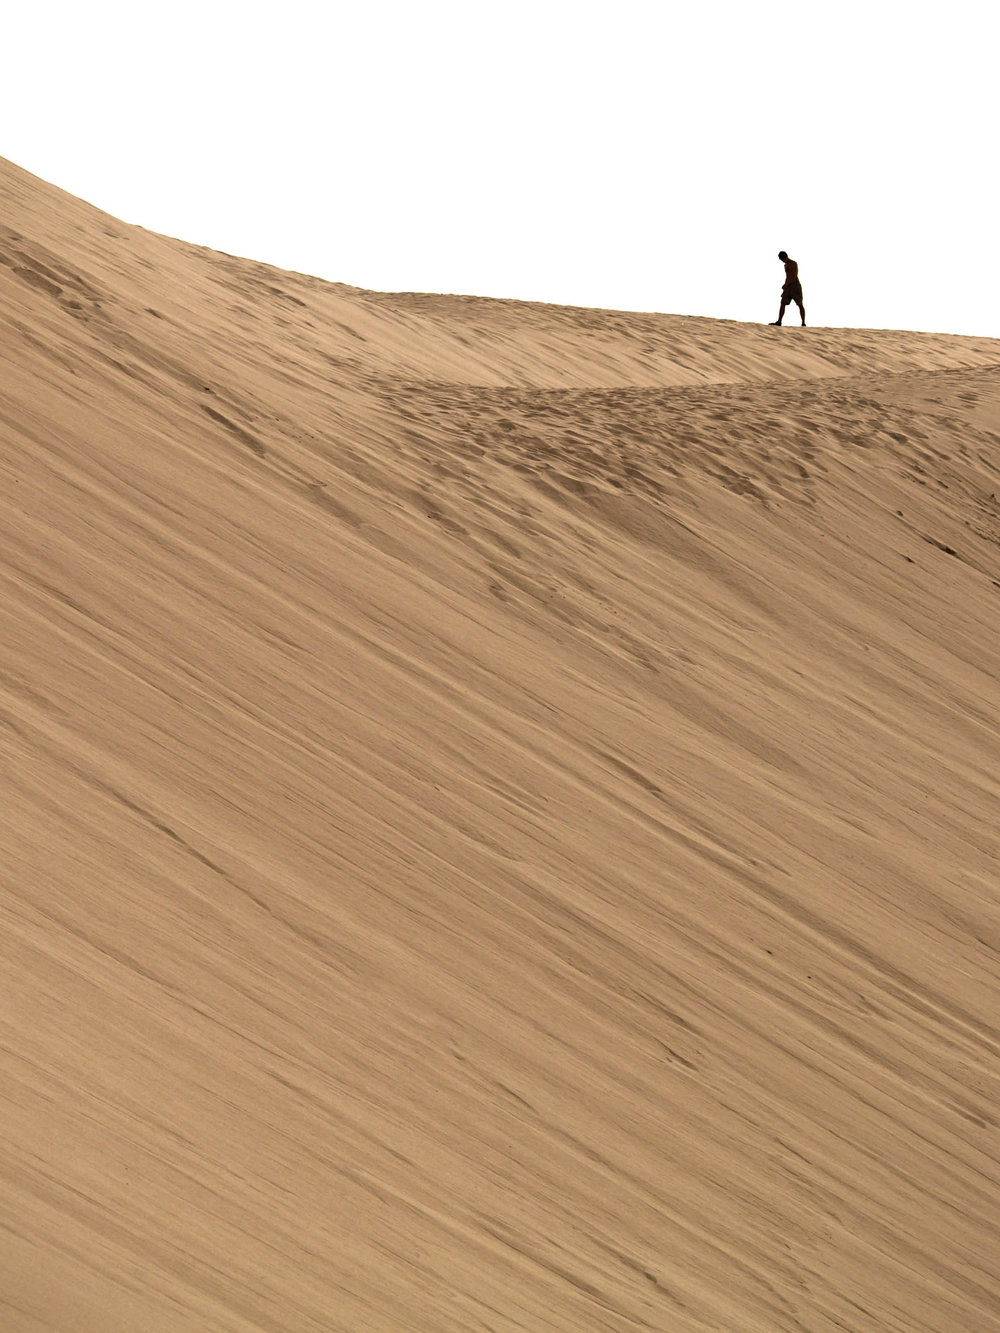 The Dune by Manolo Toledo - Downloaded from 500px.jpg